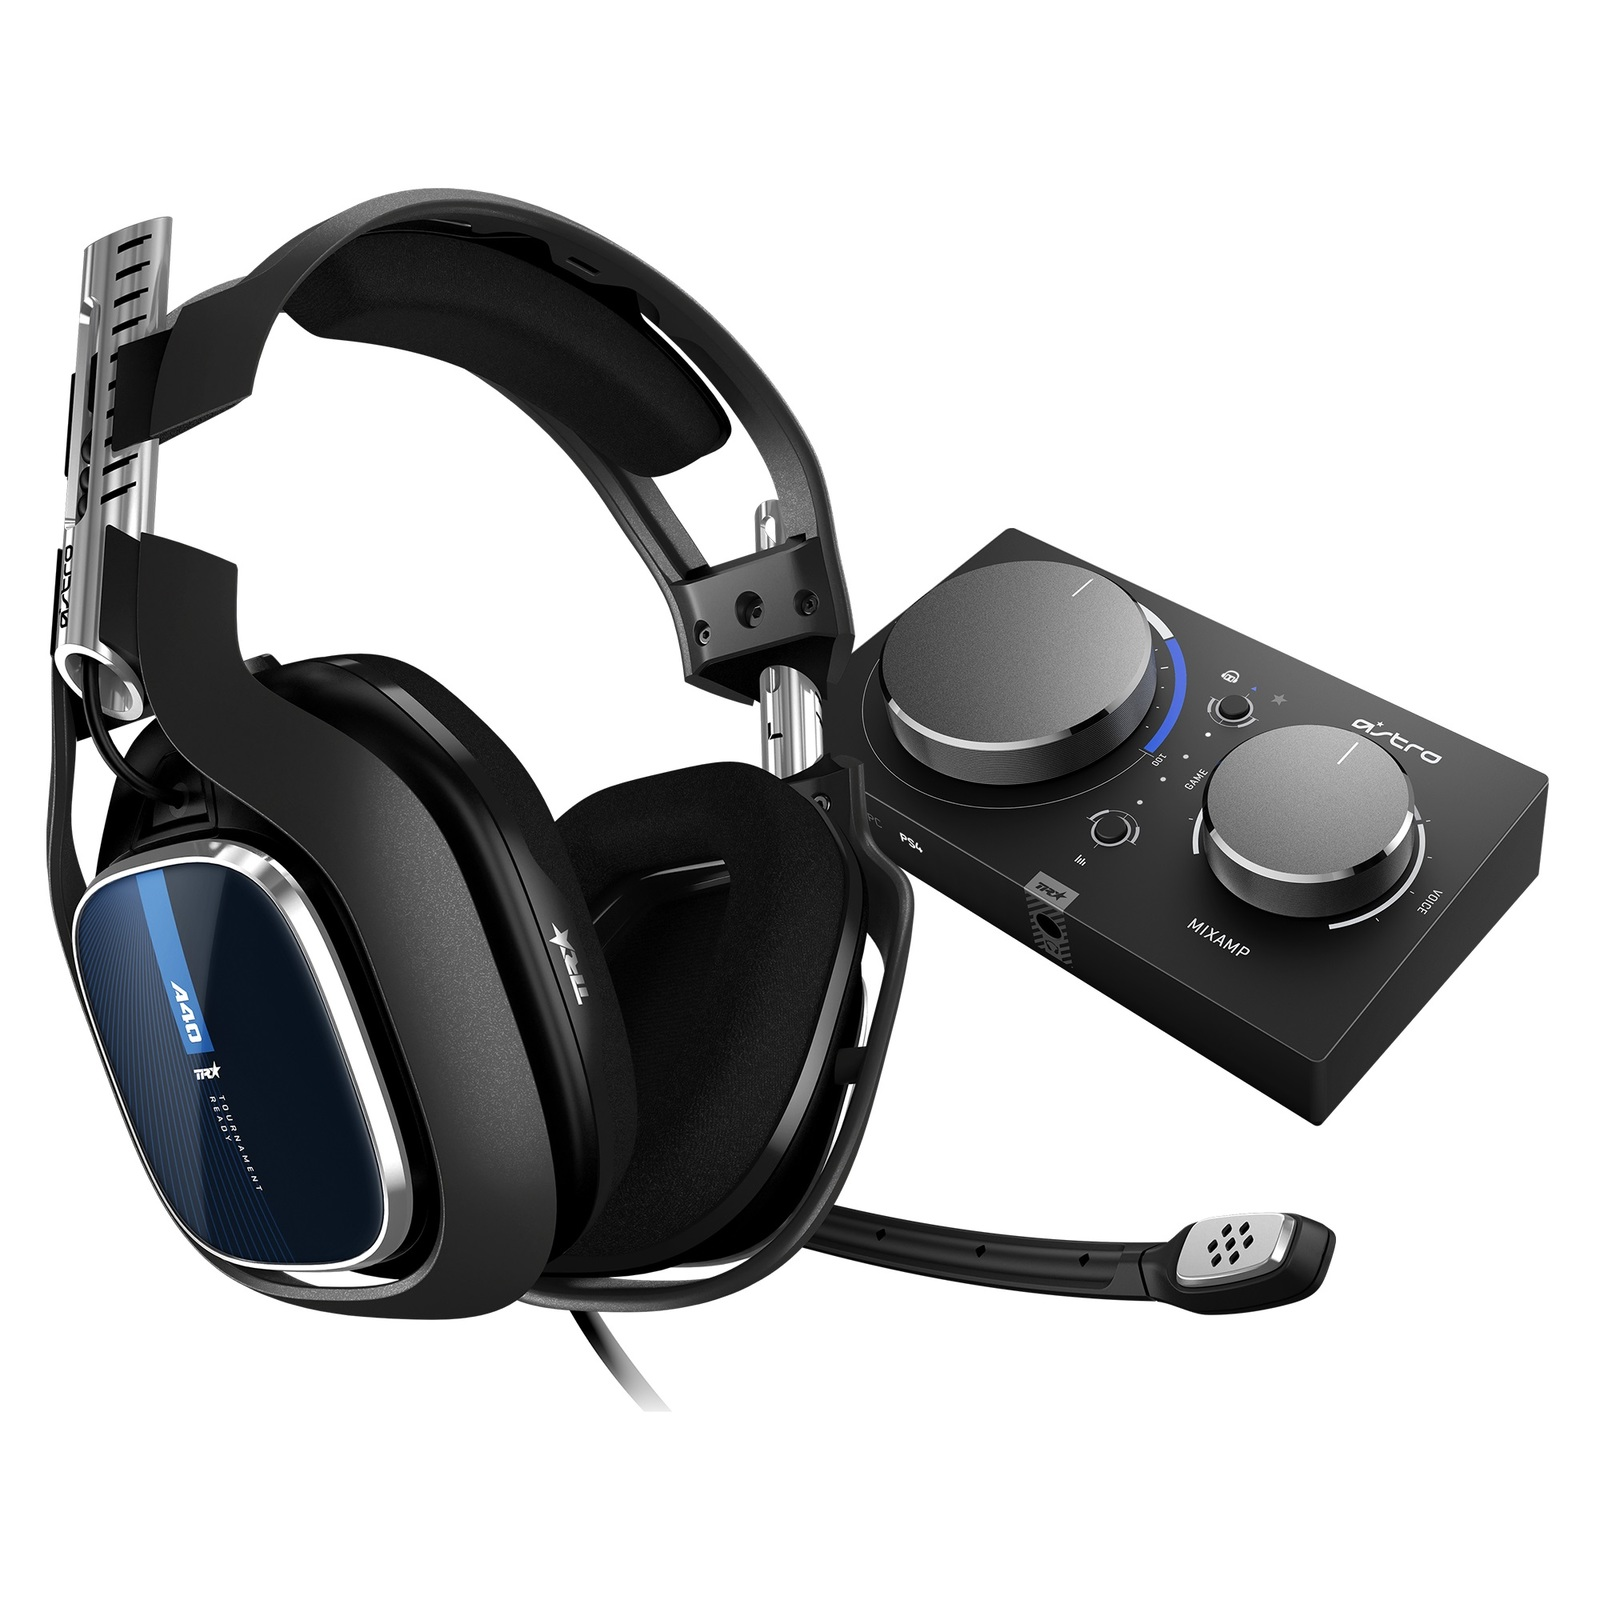 Astro A40 TR + MixAmp Pro V2 Gaming Headset (Gen 4) for PS4 image